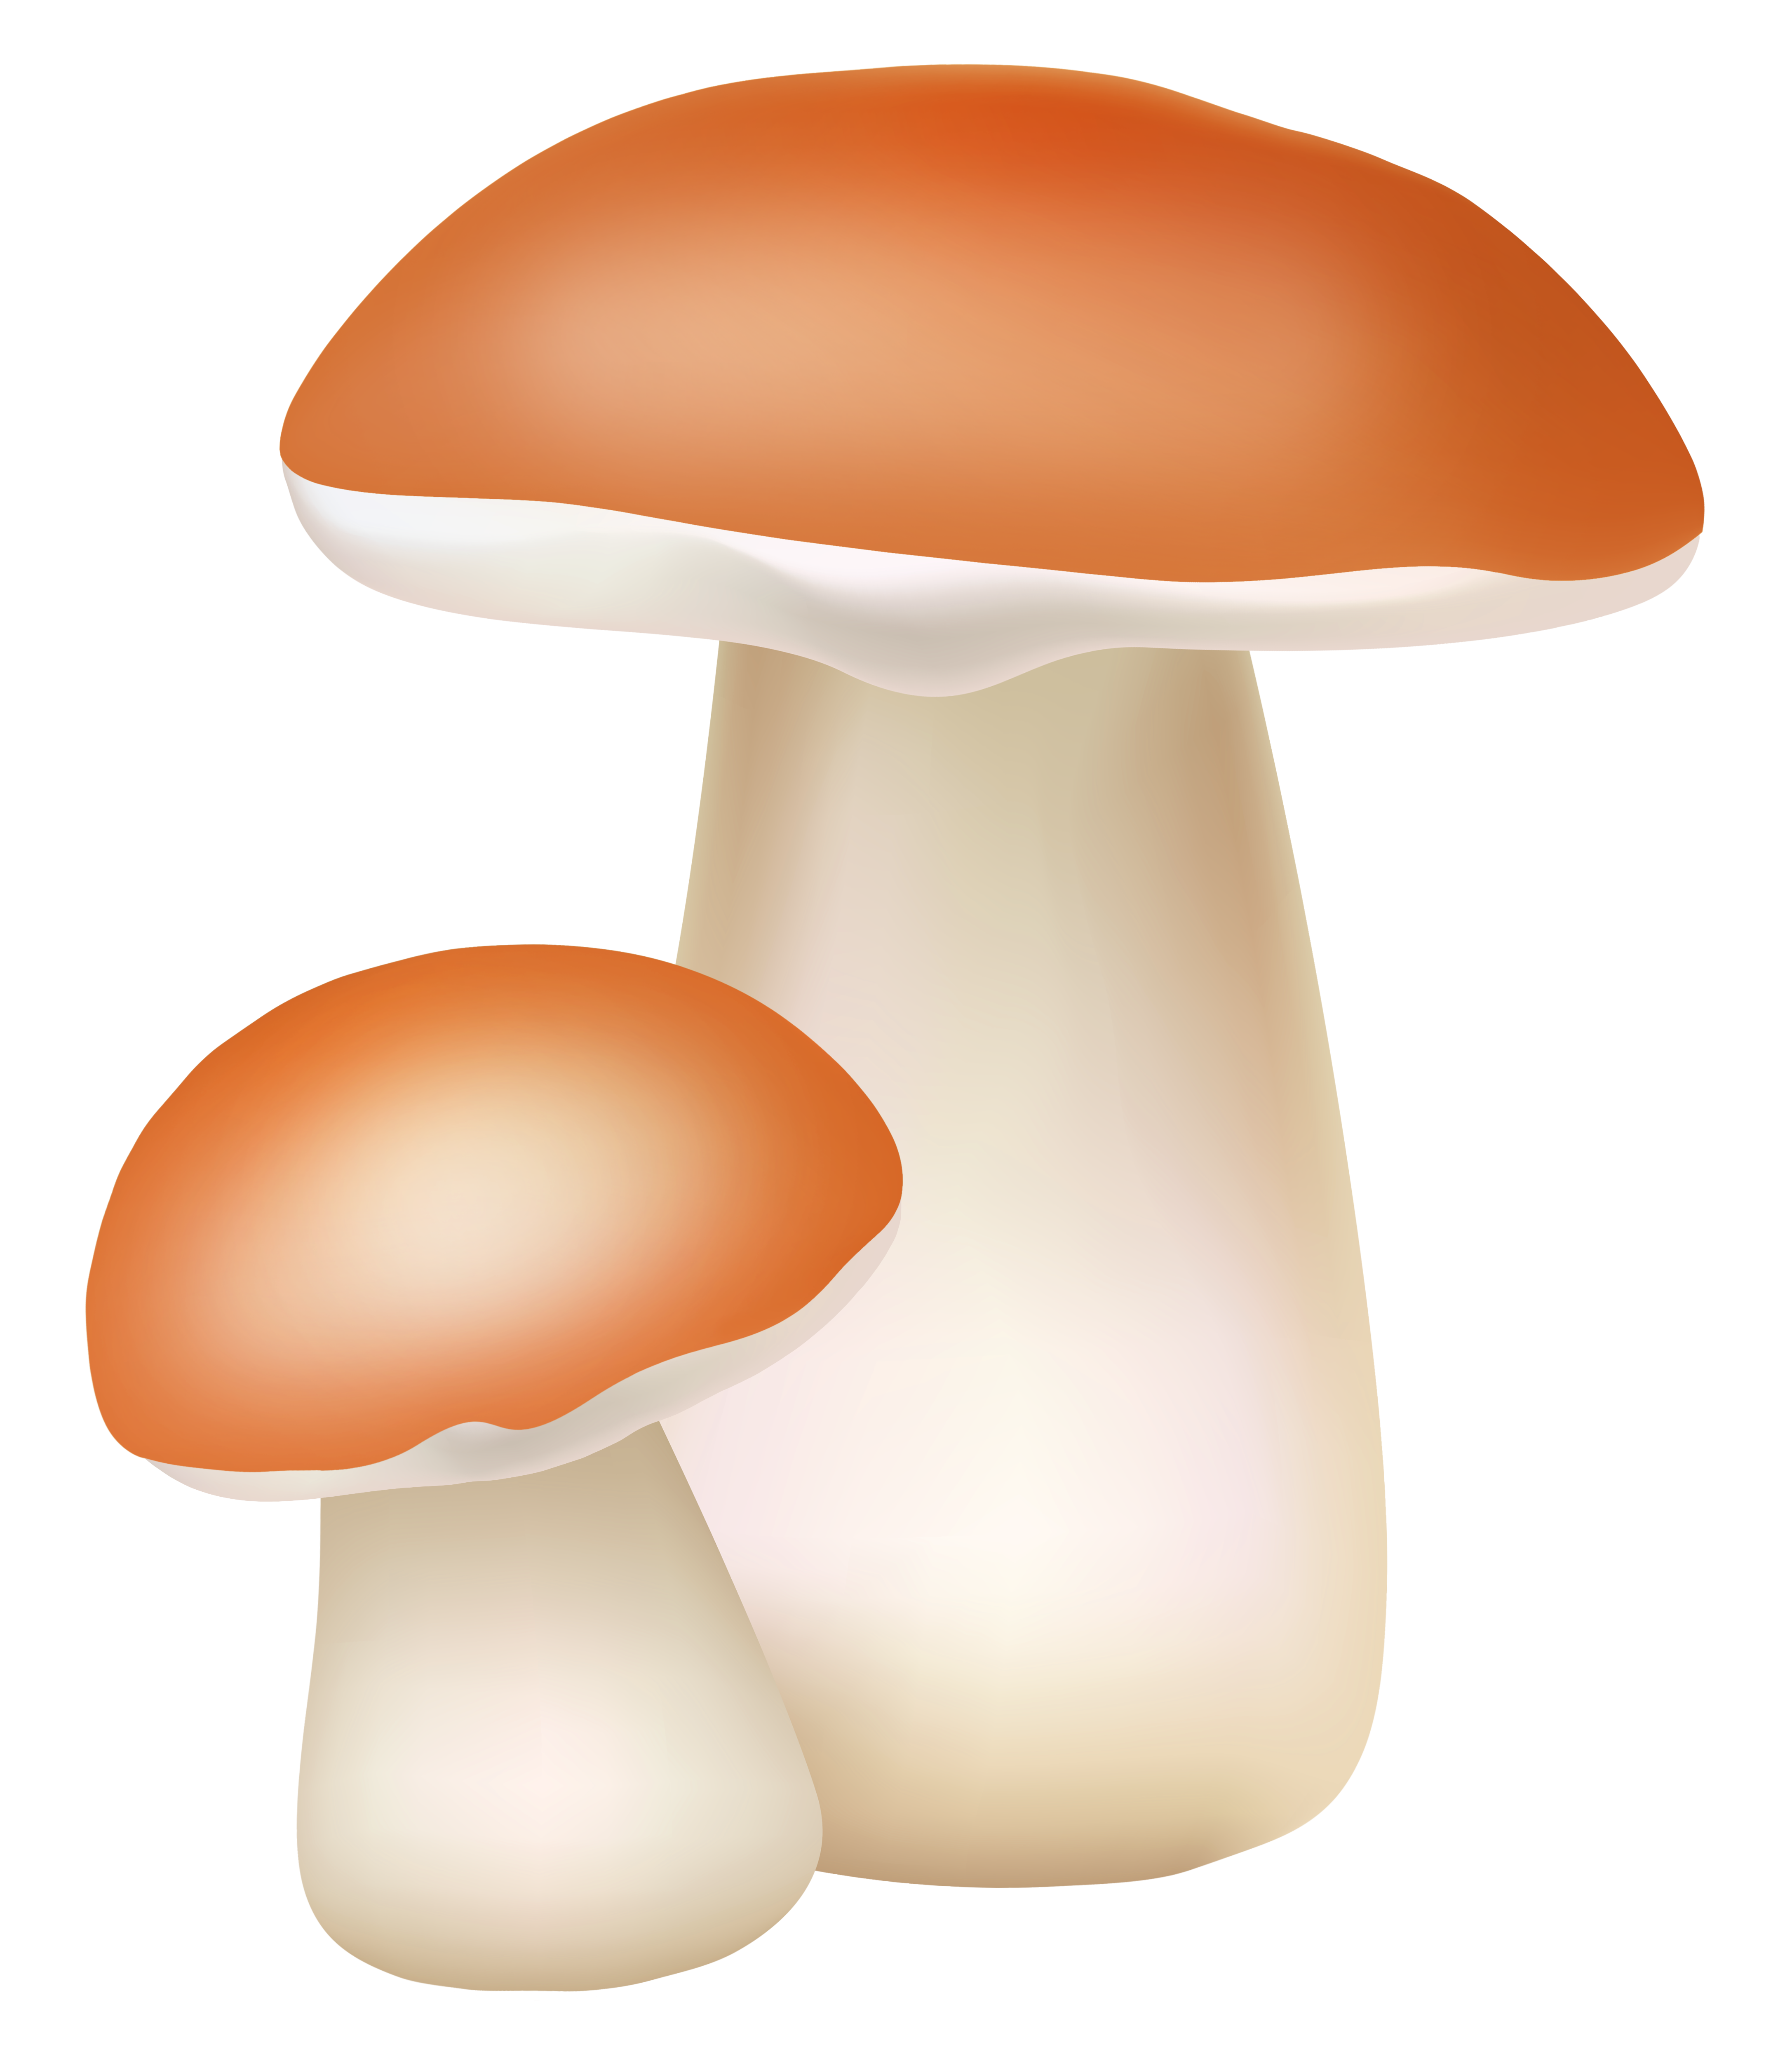 banner royalty free library Mushroom clipart agaricus. Two mushrooms png cliaprt.